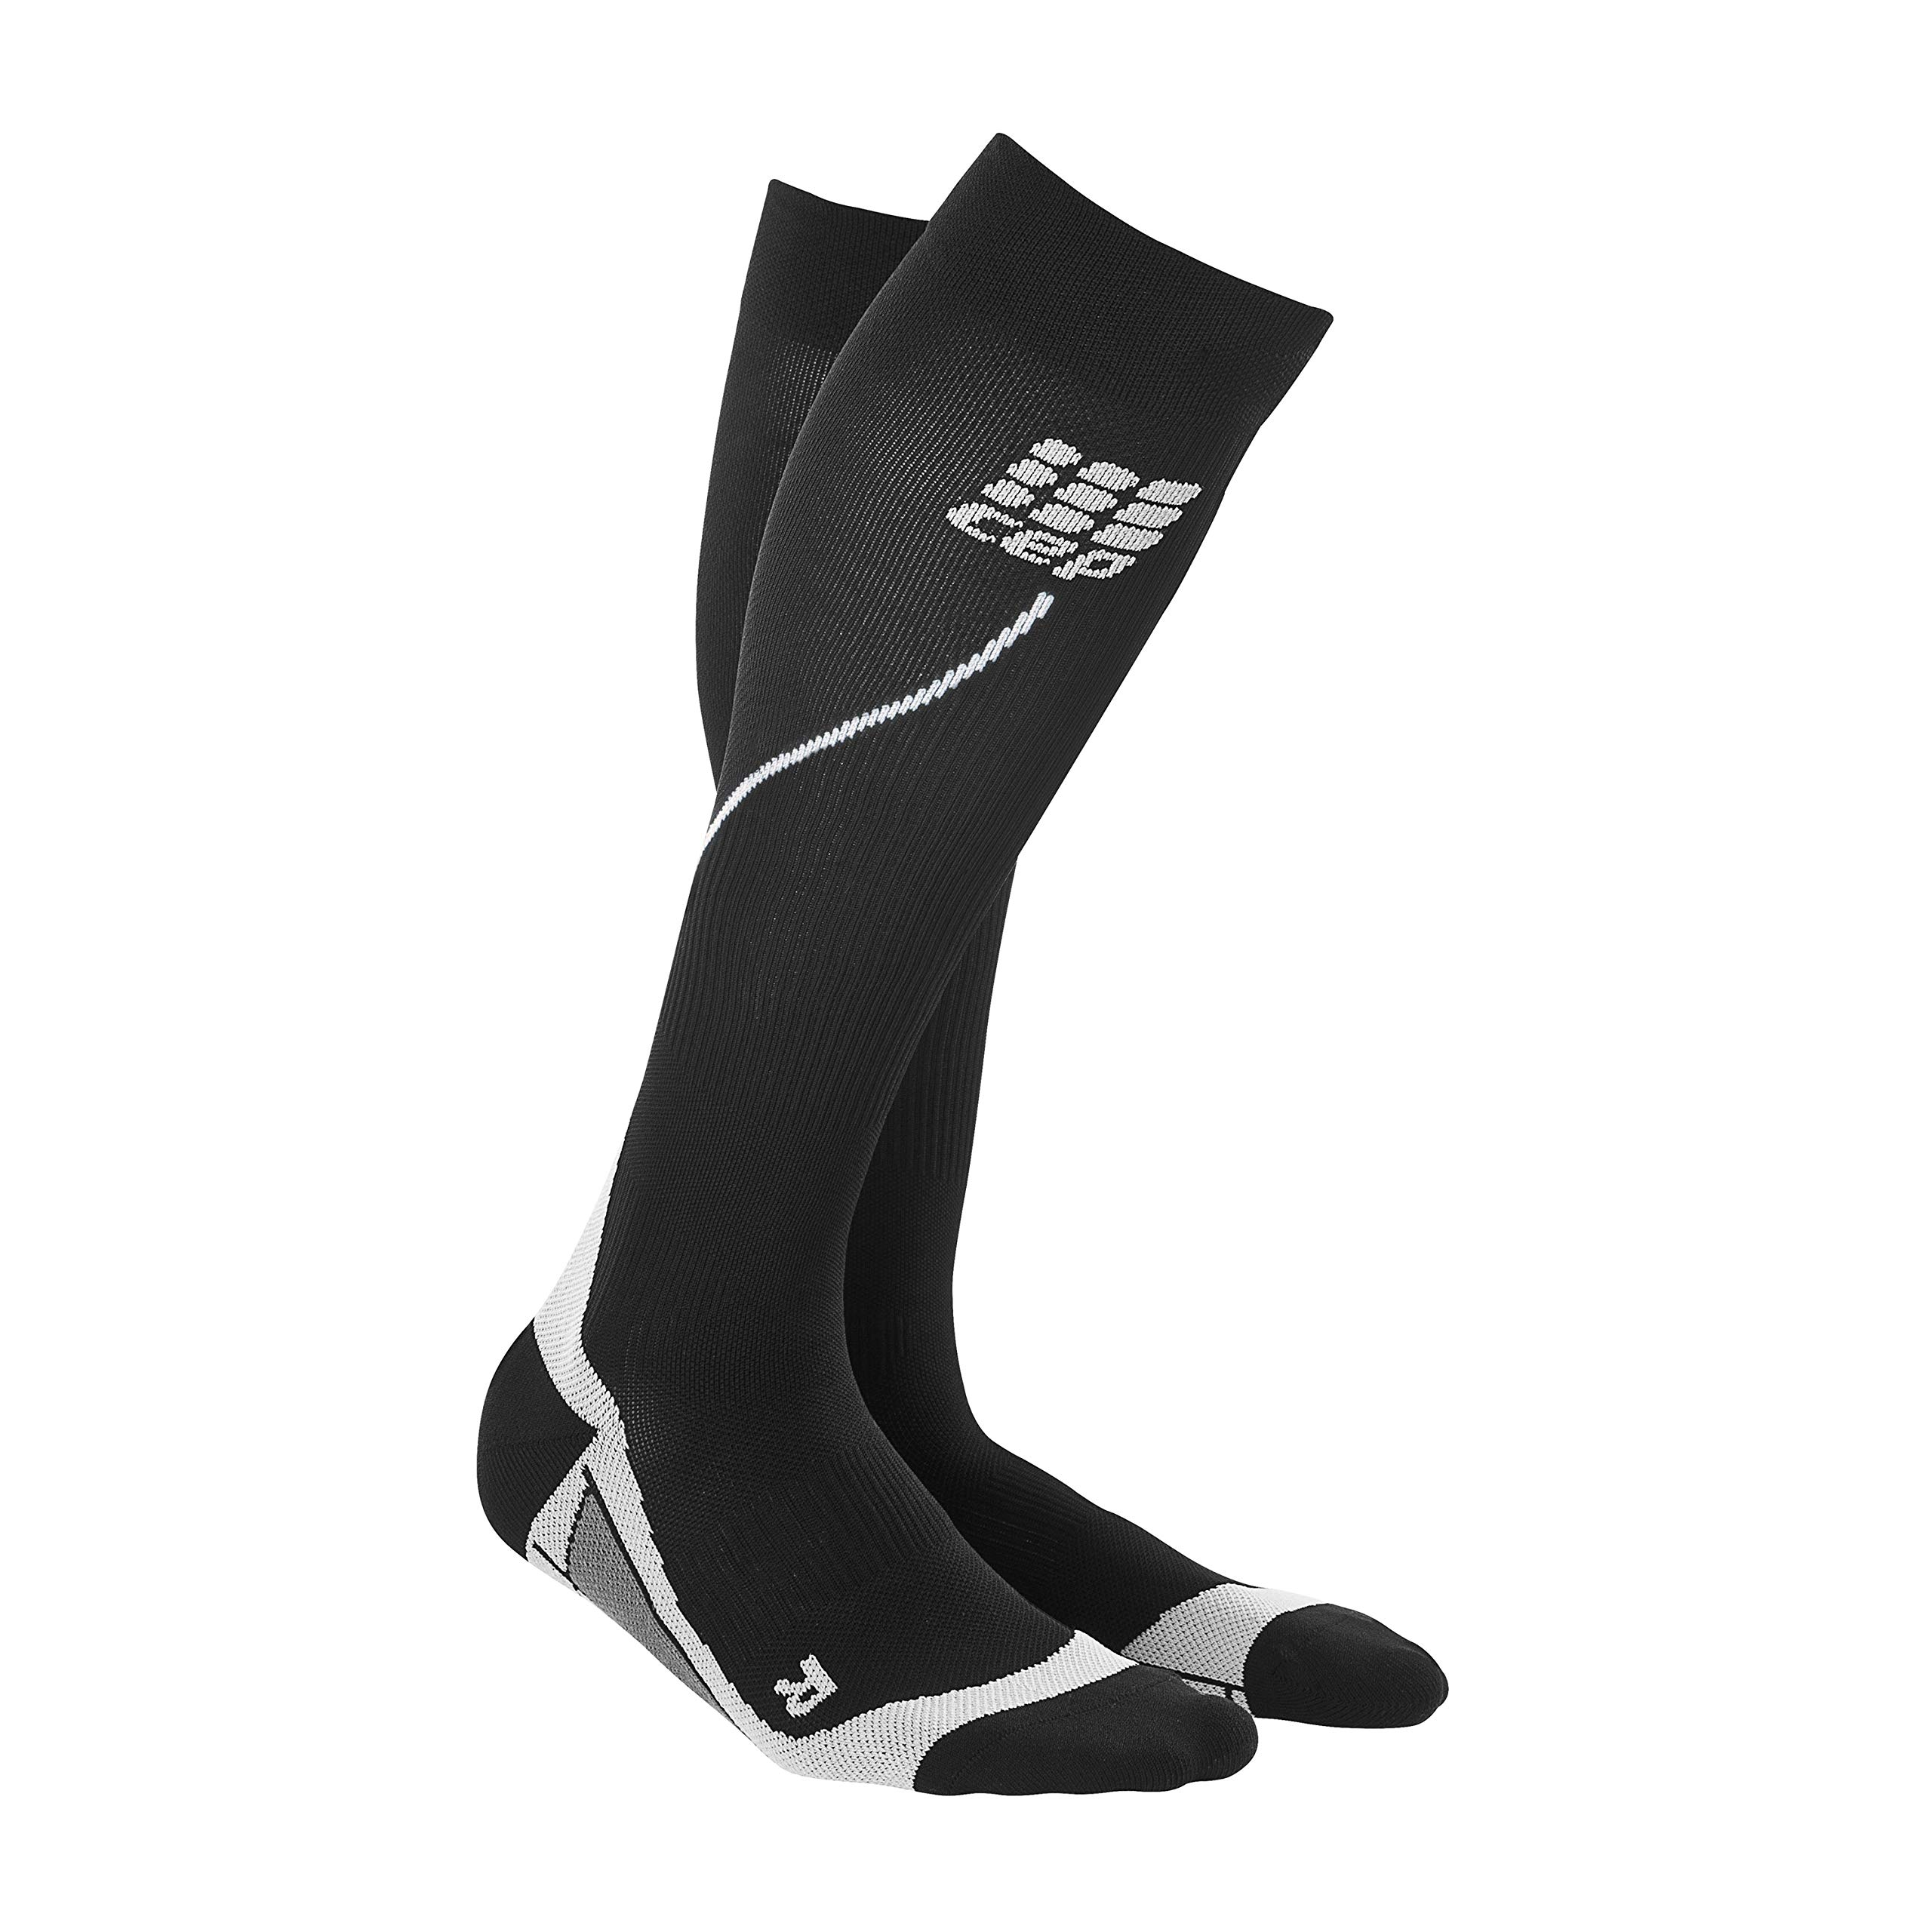 Womens Running Compression Socks - CEP Long 2.0 (Black/Gray) II